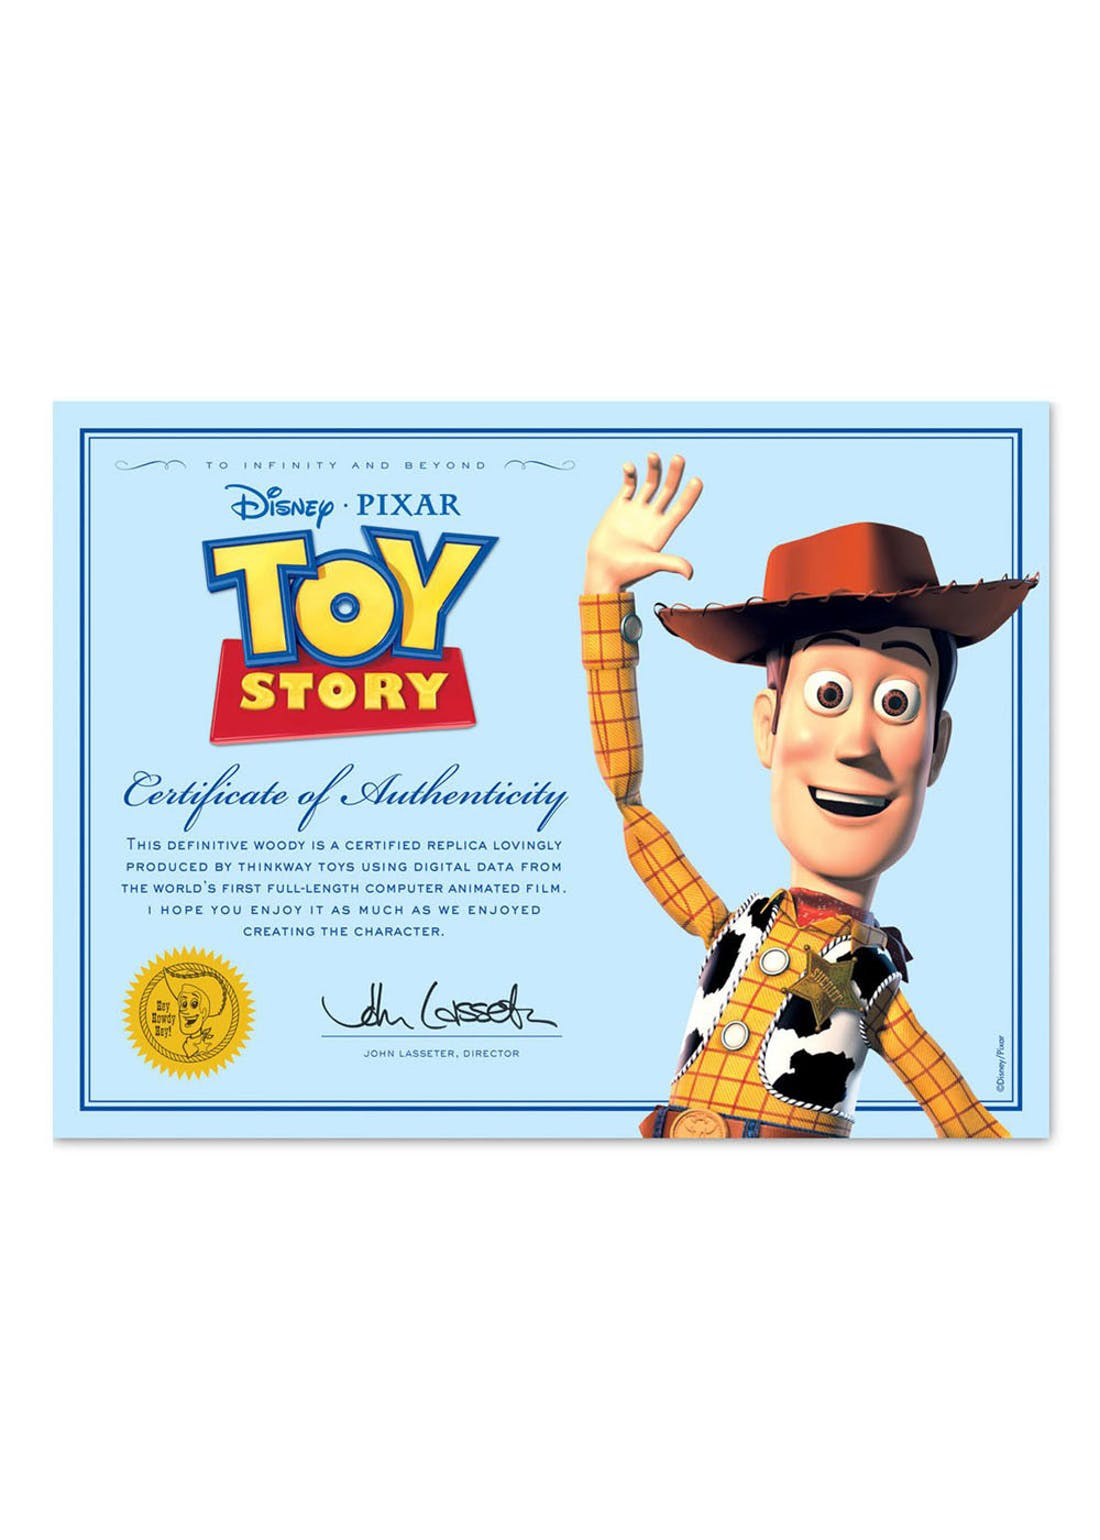 Disney Pixar Toy Story 4 Collection Woody Figure (33cm x 28cm x 11cm)